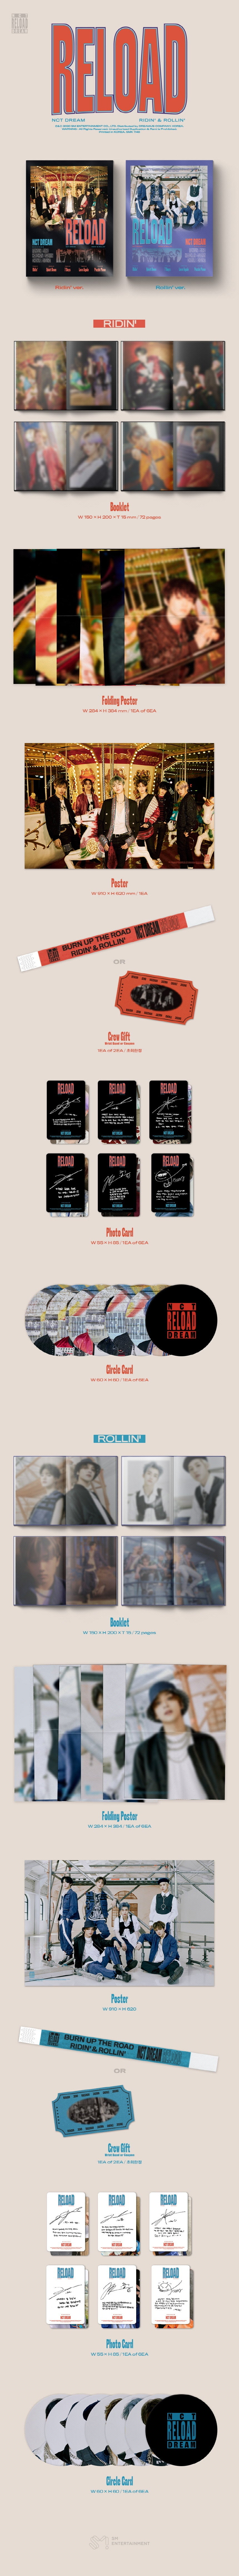 NCT Dream Reload Ridin and Rollin NEW release at SOKOLLAB Kpop albums music beauty